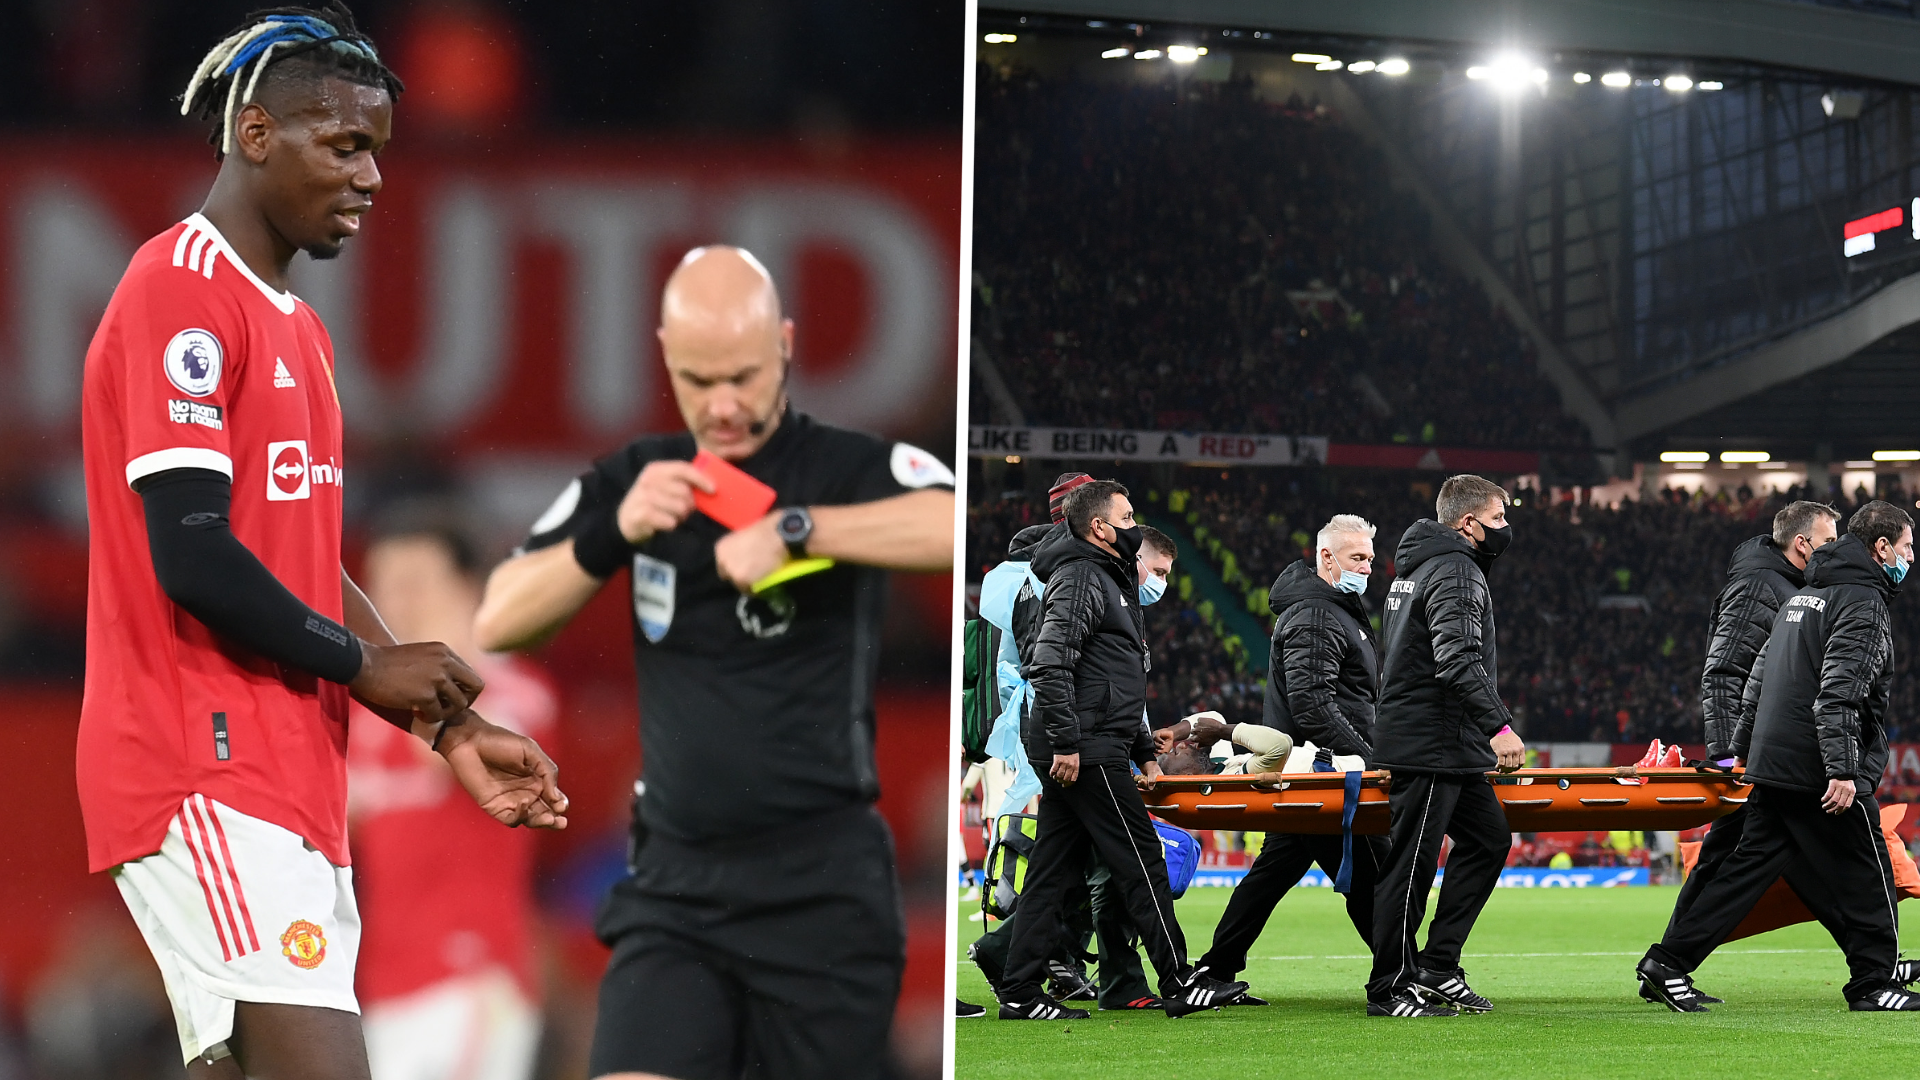 Pogba sent off after Keita horror challenge as Liverpool rout Manchester United